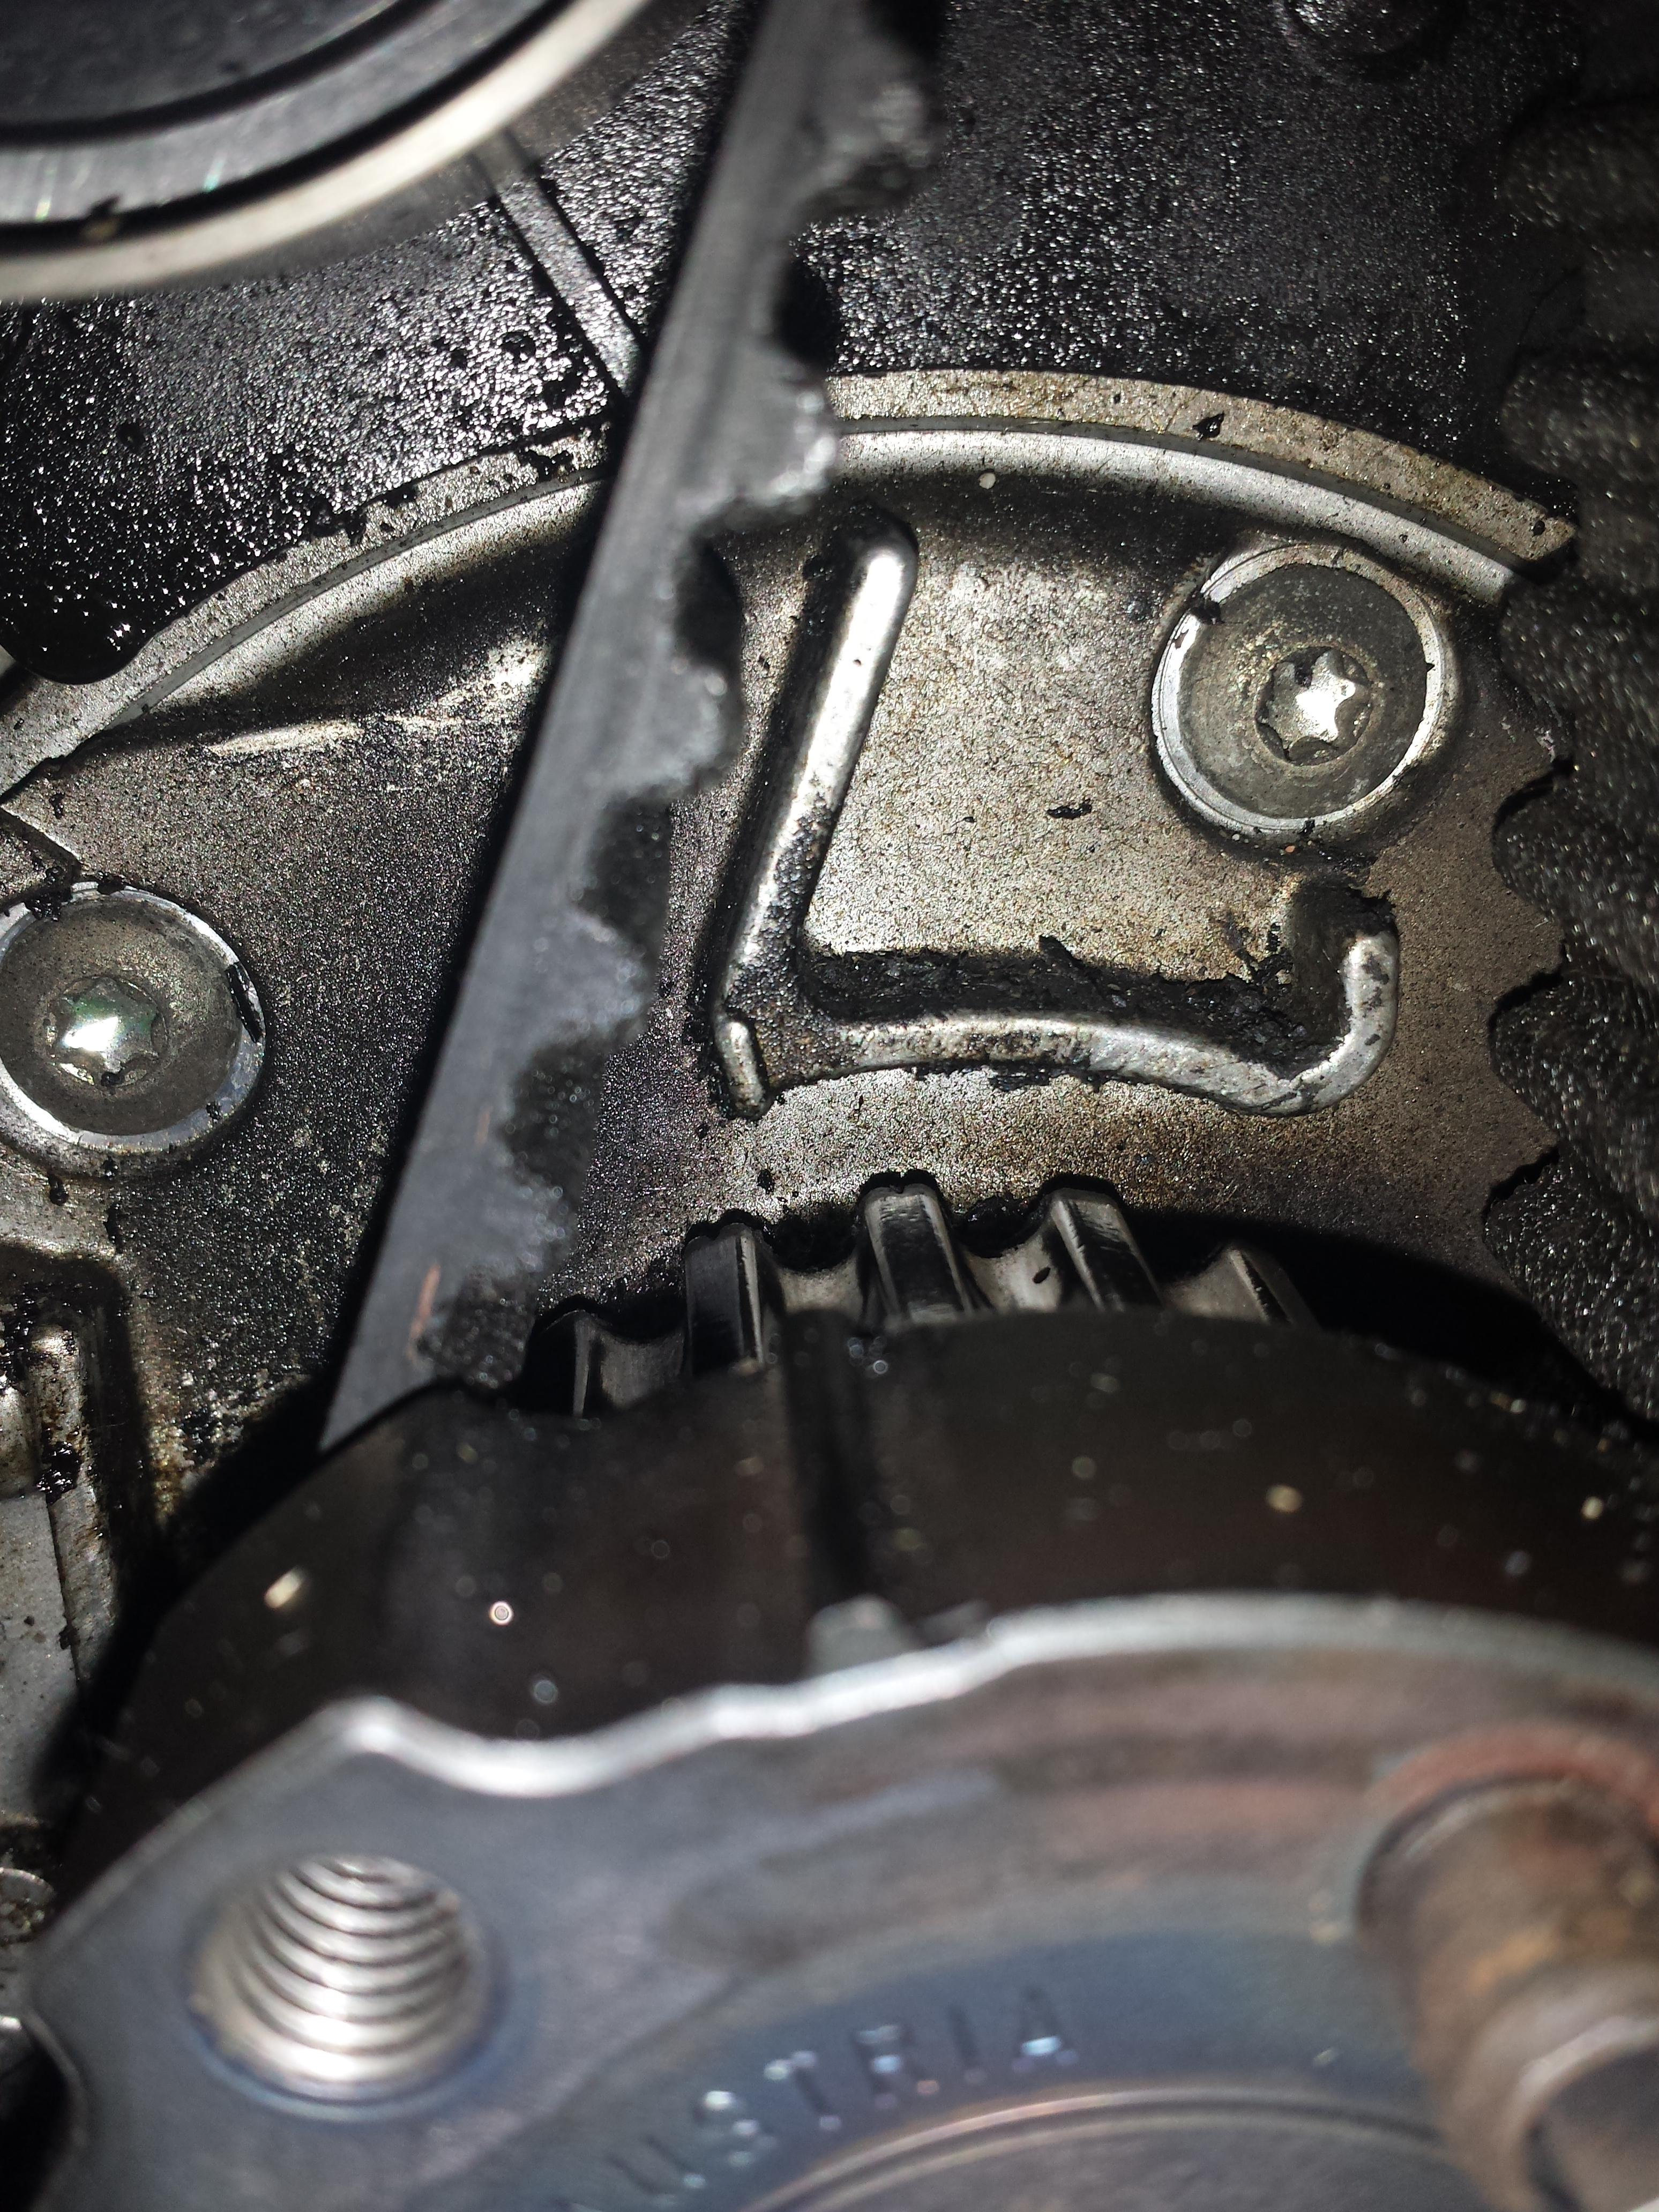 2003 Volvo XC70 Low Compression after timing belt